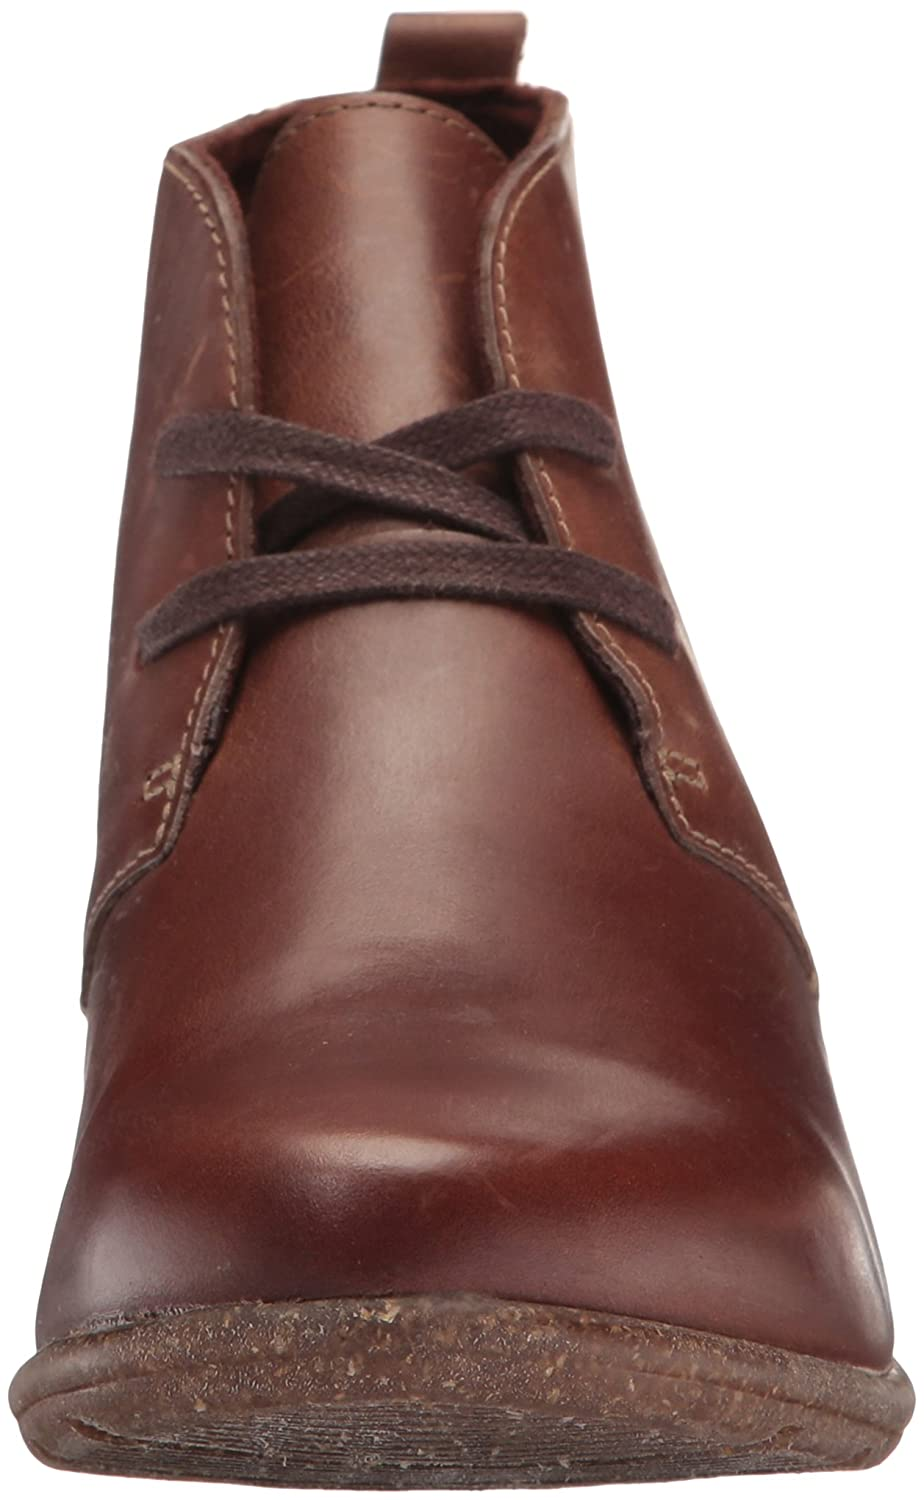 CLARKS Women's Wilrose Sage Ankle Bootie B01MU013DP 6 W US|Brown Oiled Nubuck